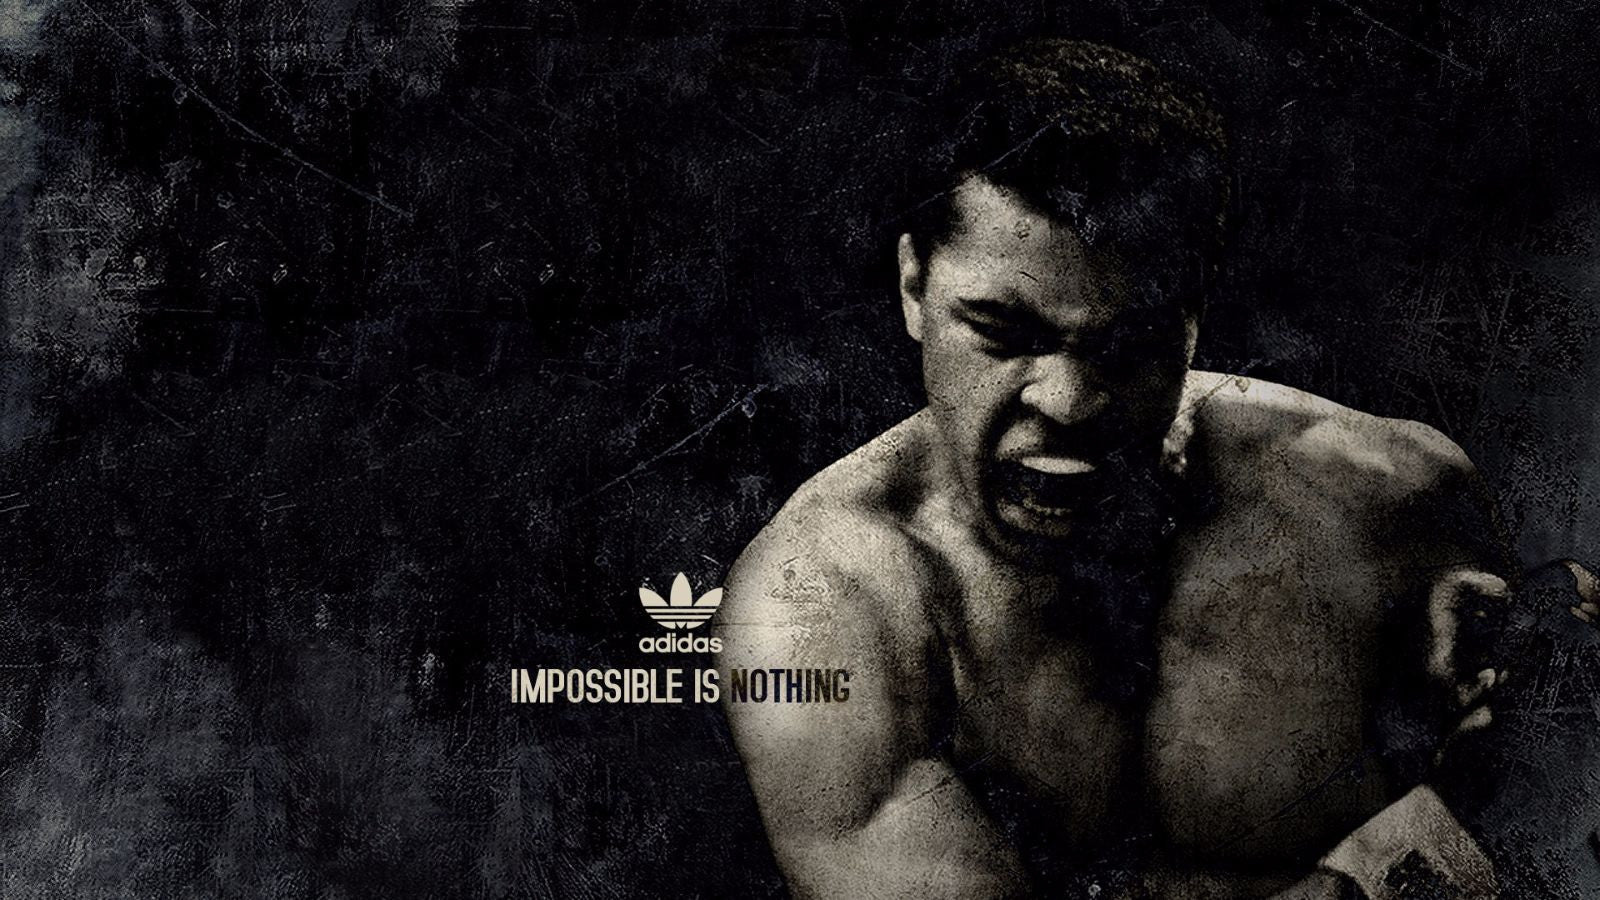 adidas impossible is nothing ad